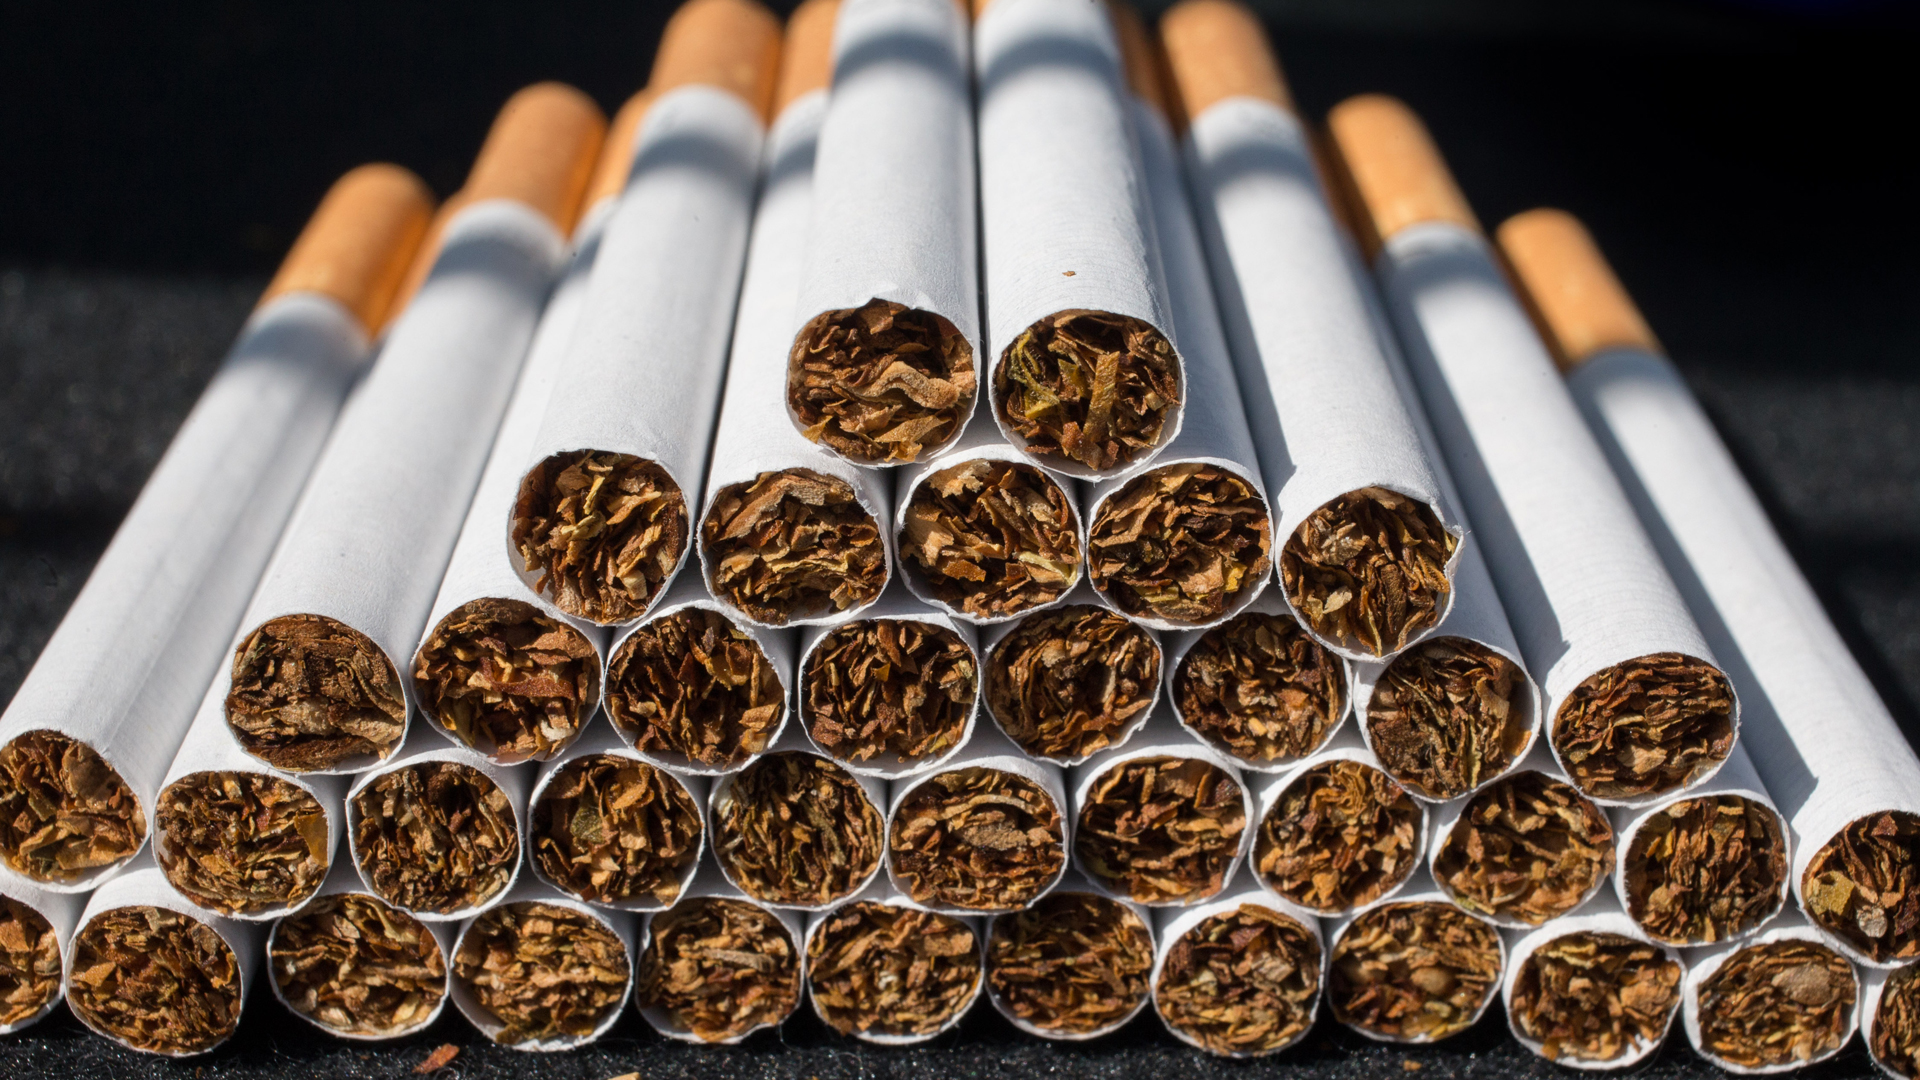 Cigarettes are seen in this file photo. (Credit: Getty Images)